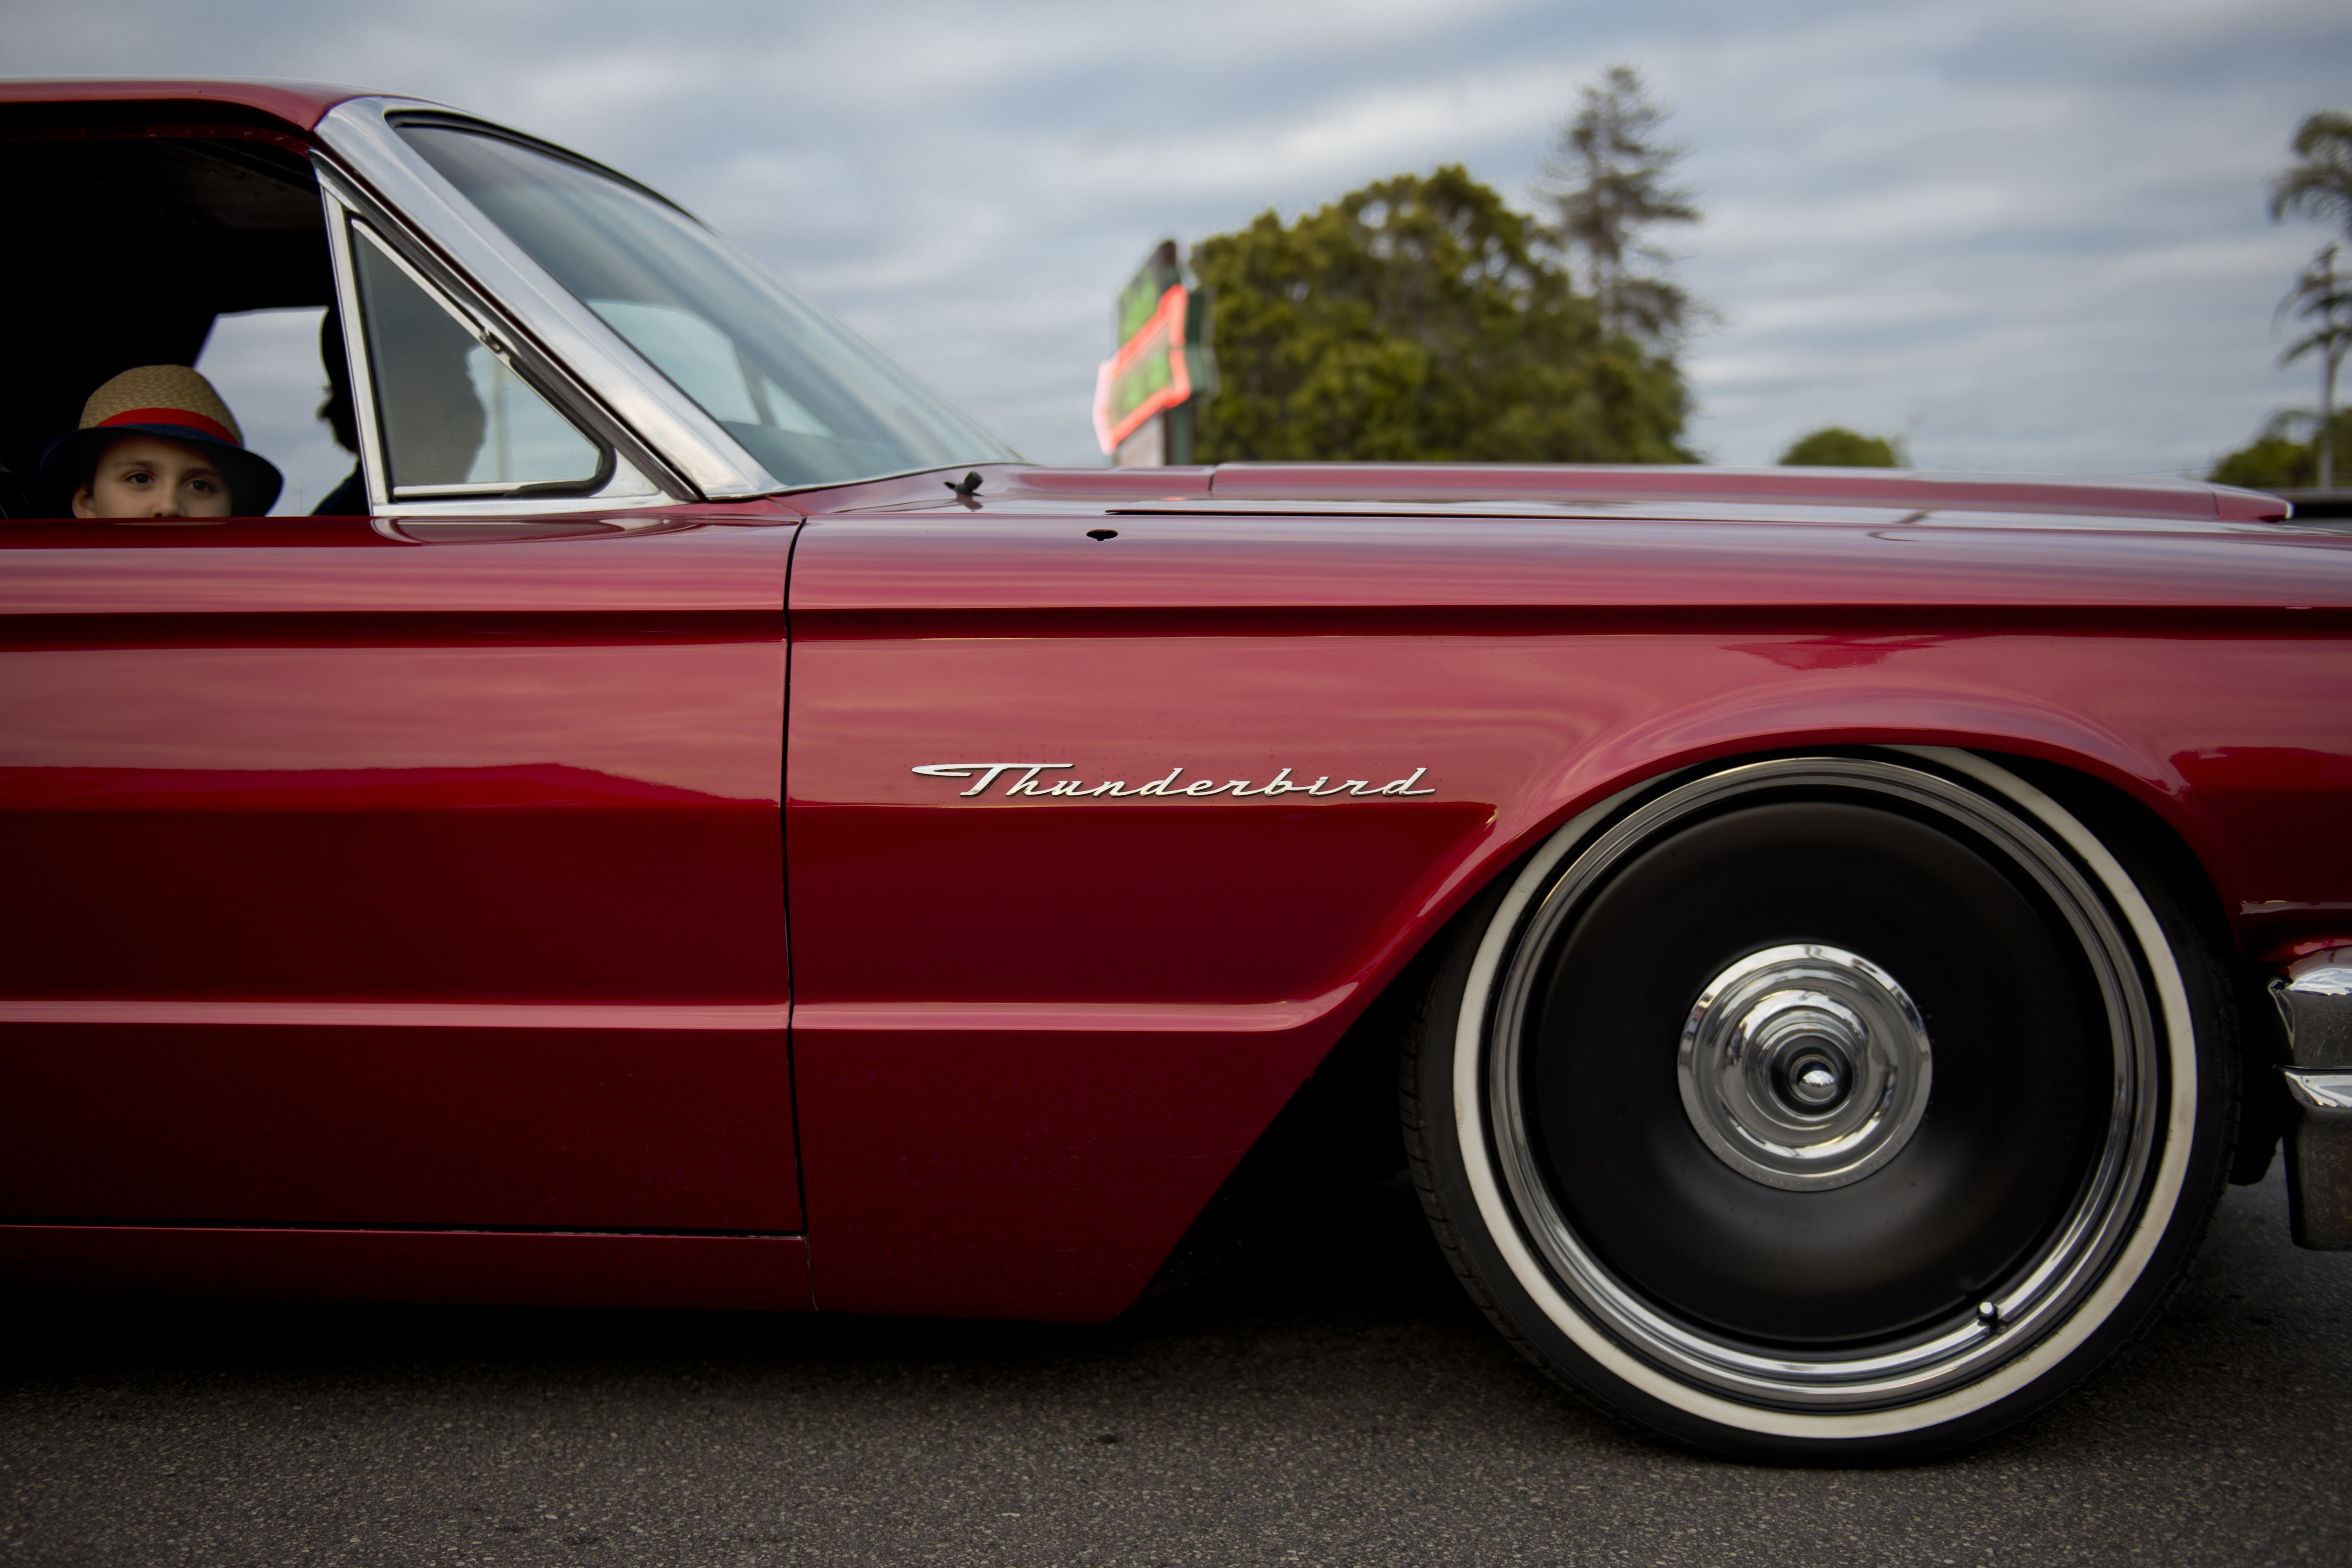 A close-up of a red Ford Thunderbird with a child behind the lowered down window of the passenger seat